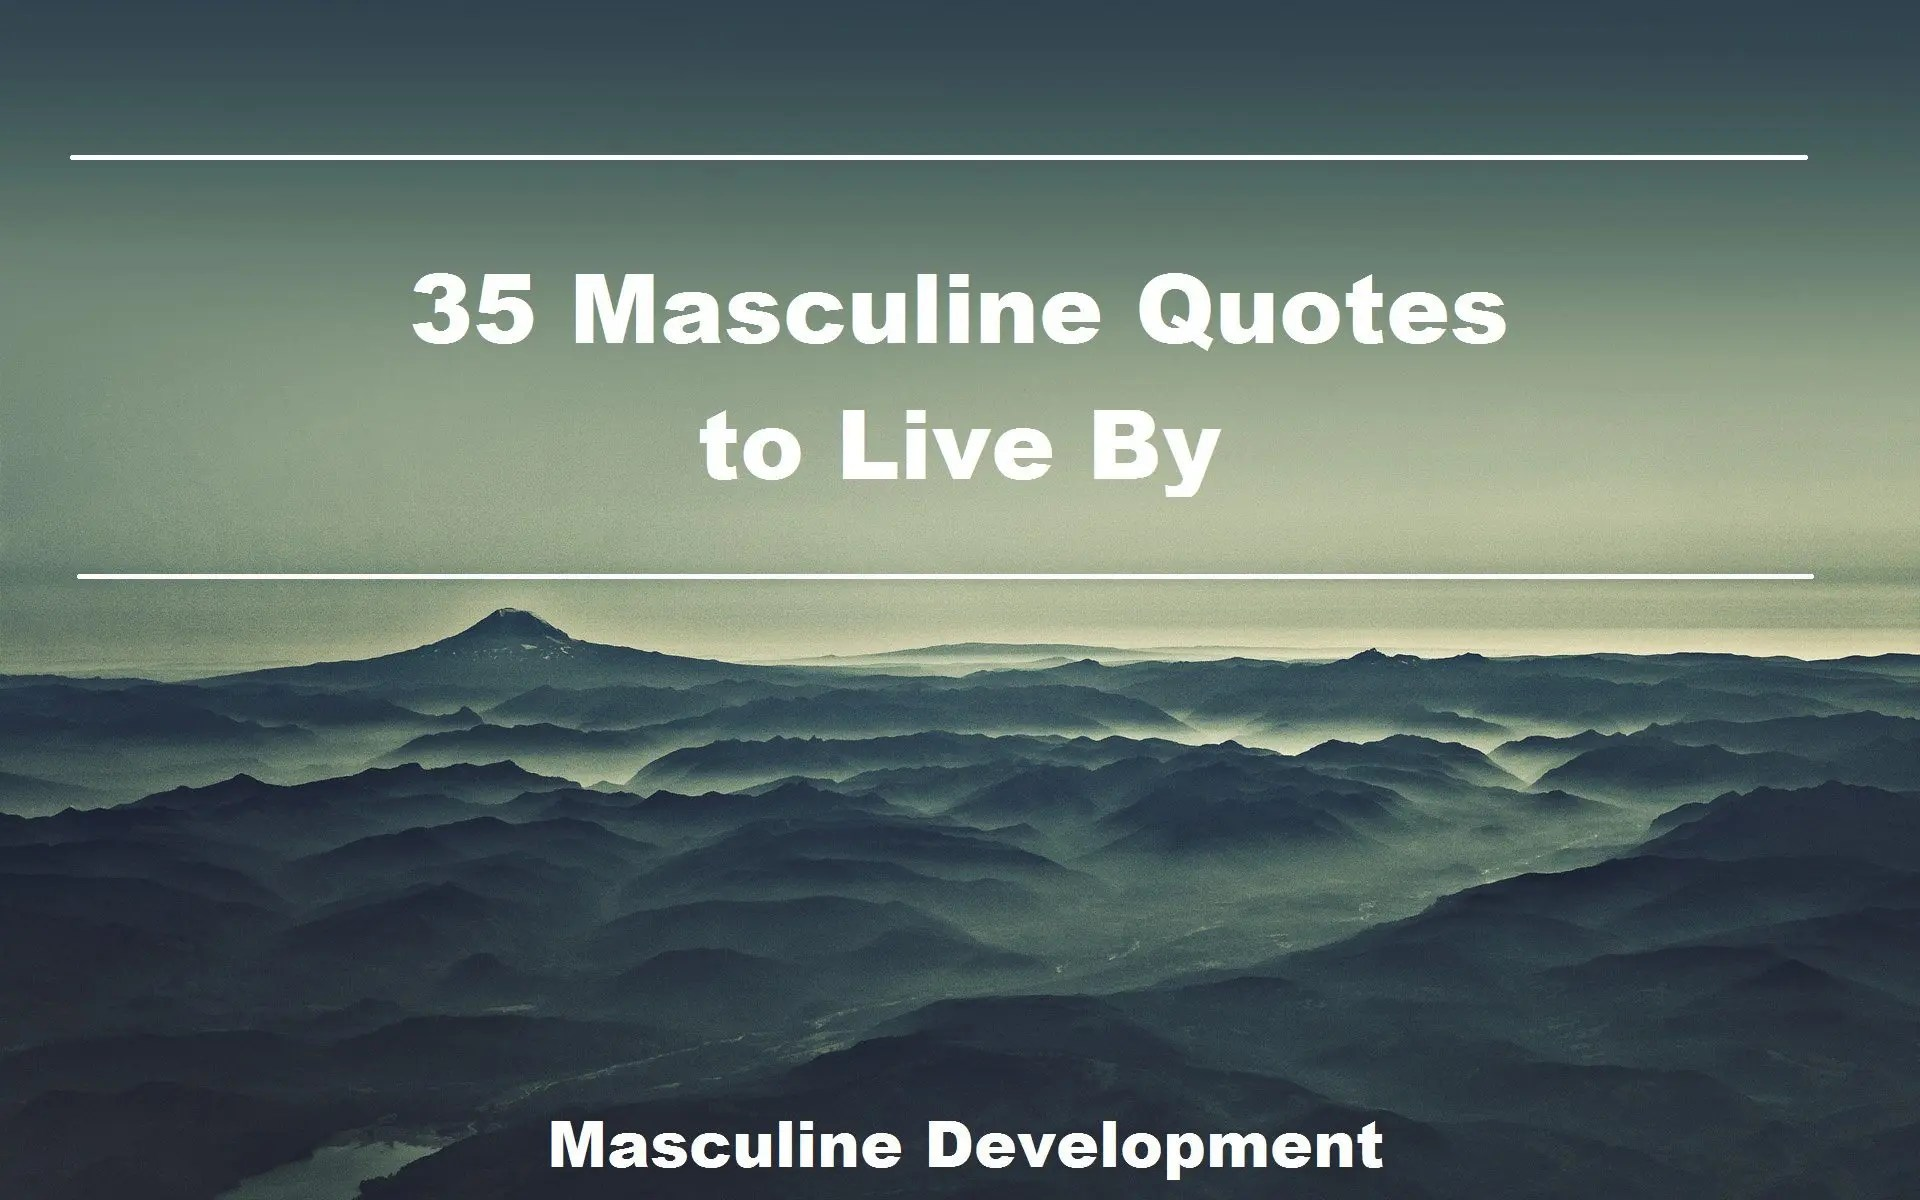 35 Masculine Quotes To Live By